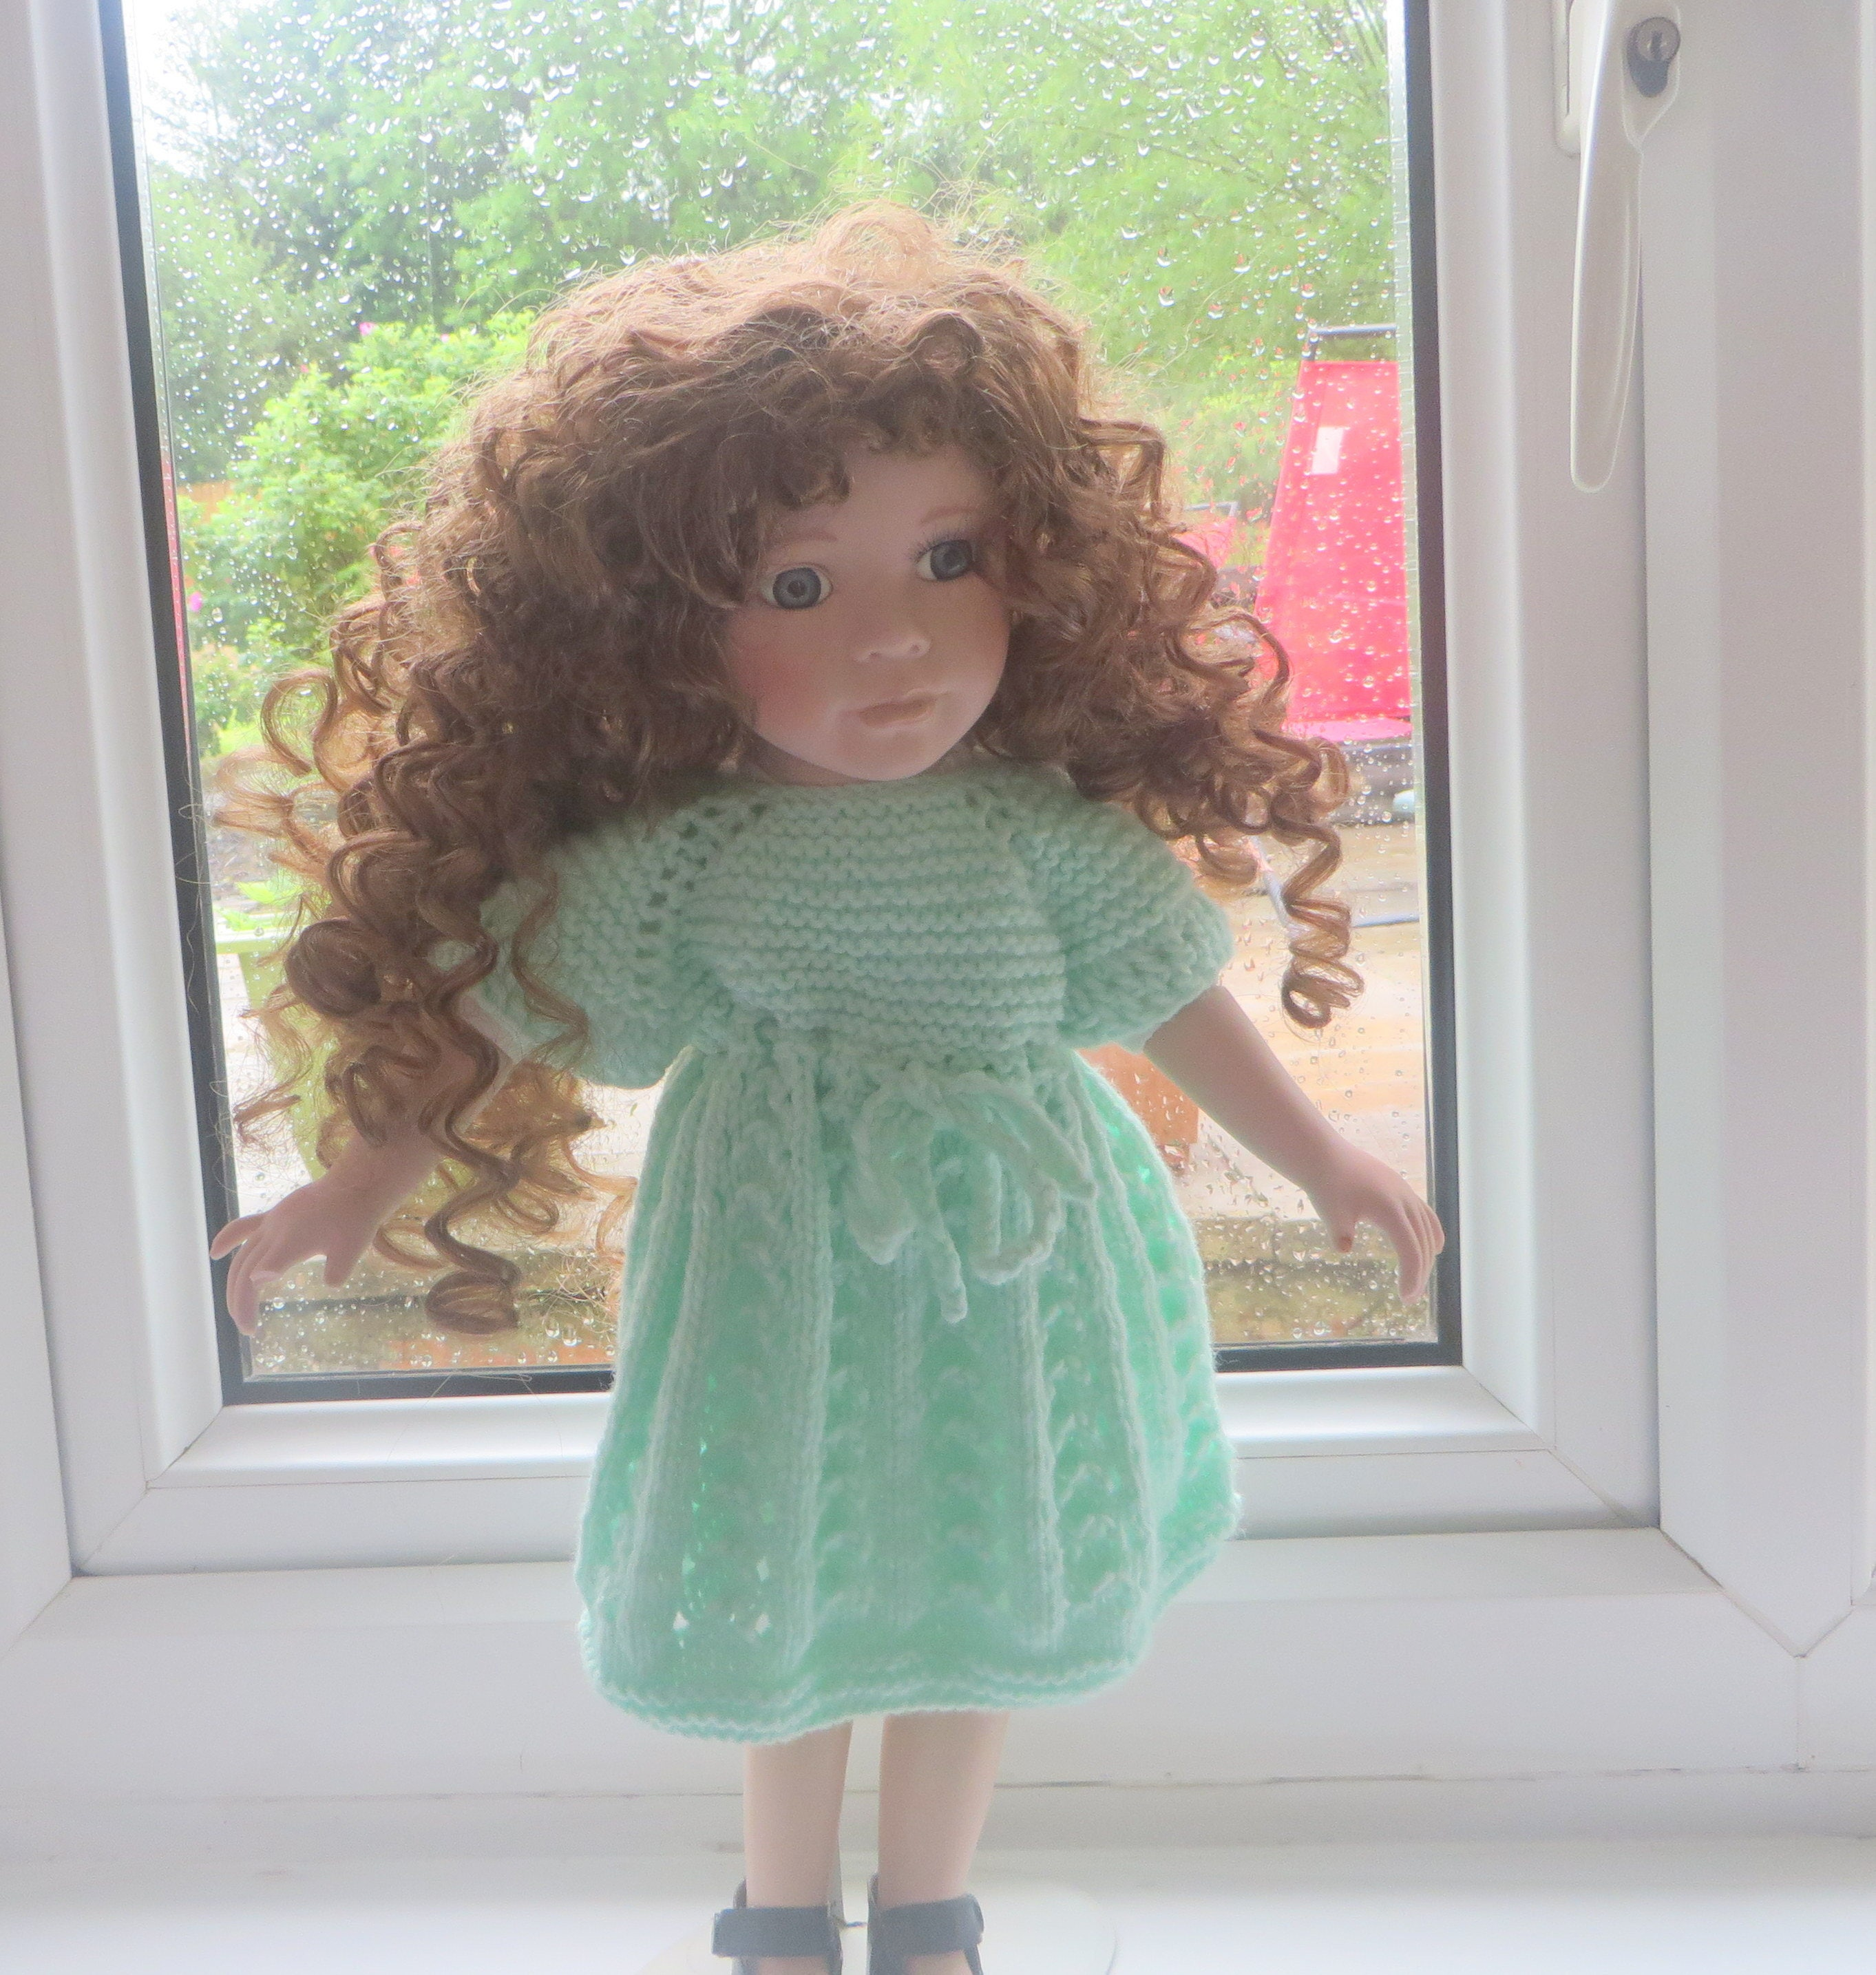 18 American Girl Doll and other Dolls this size Hand knitted Dolls clothes Dress in mint green.